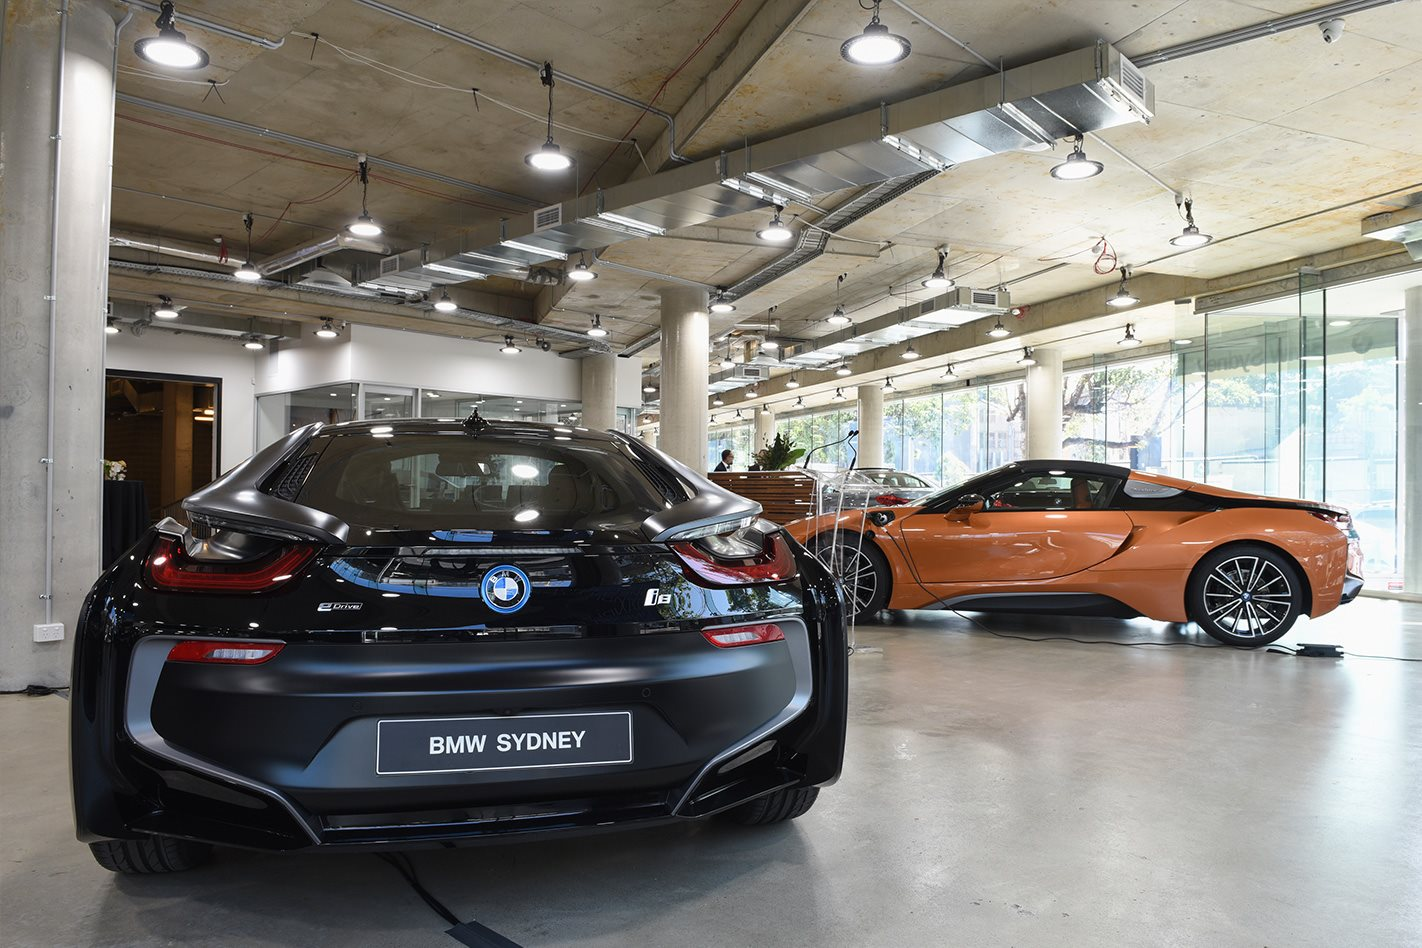 2018 Bmw I8 Roadster Steps Out In Sydney